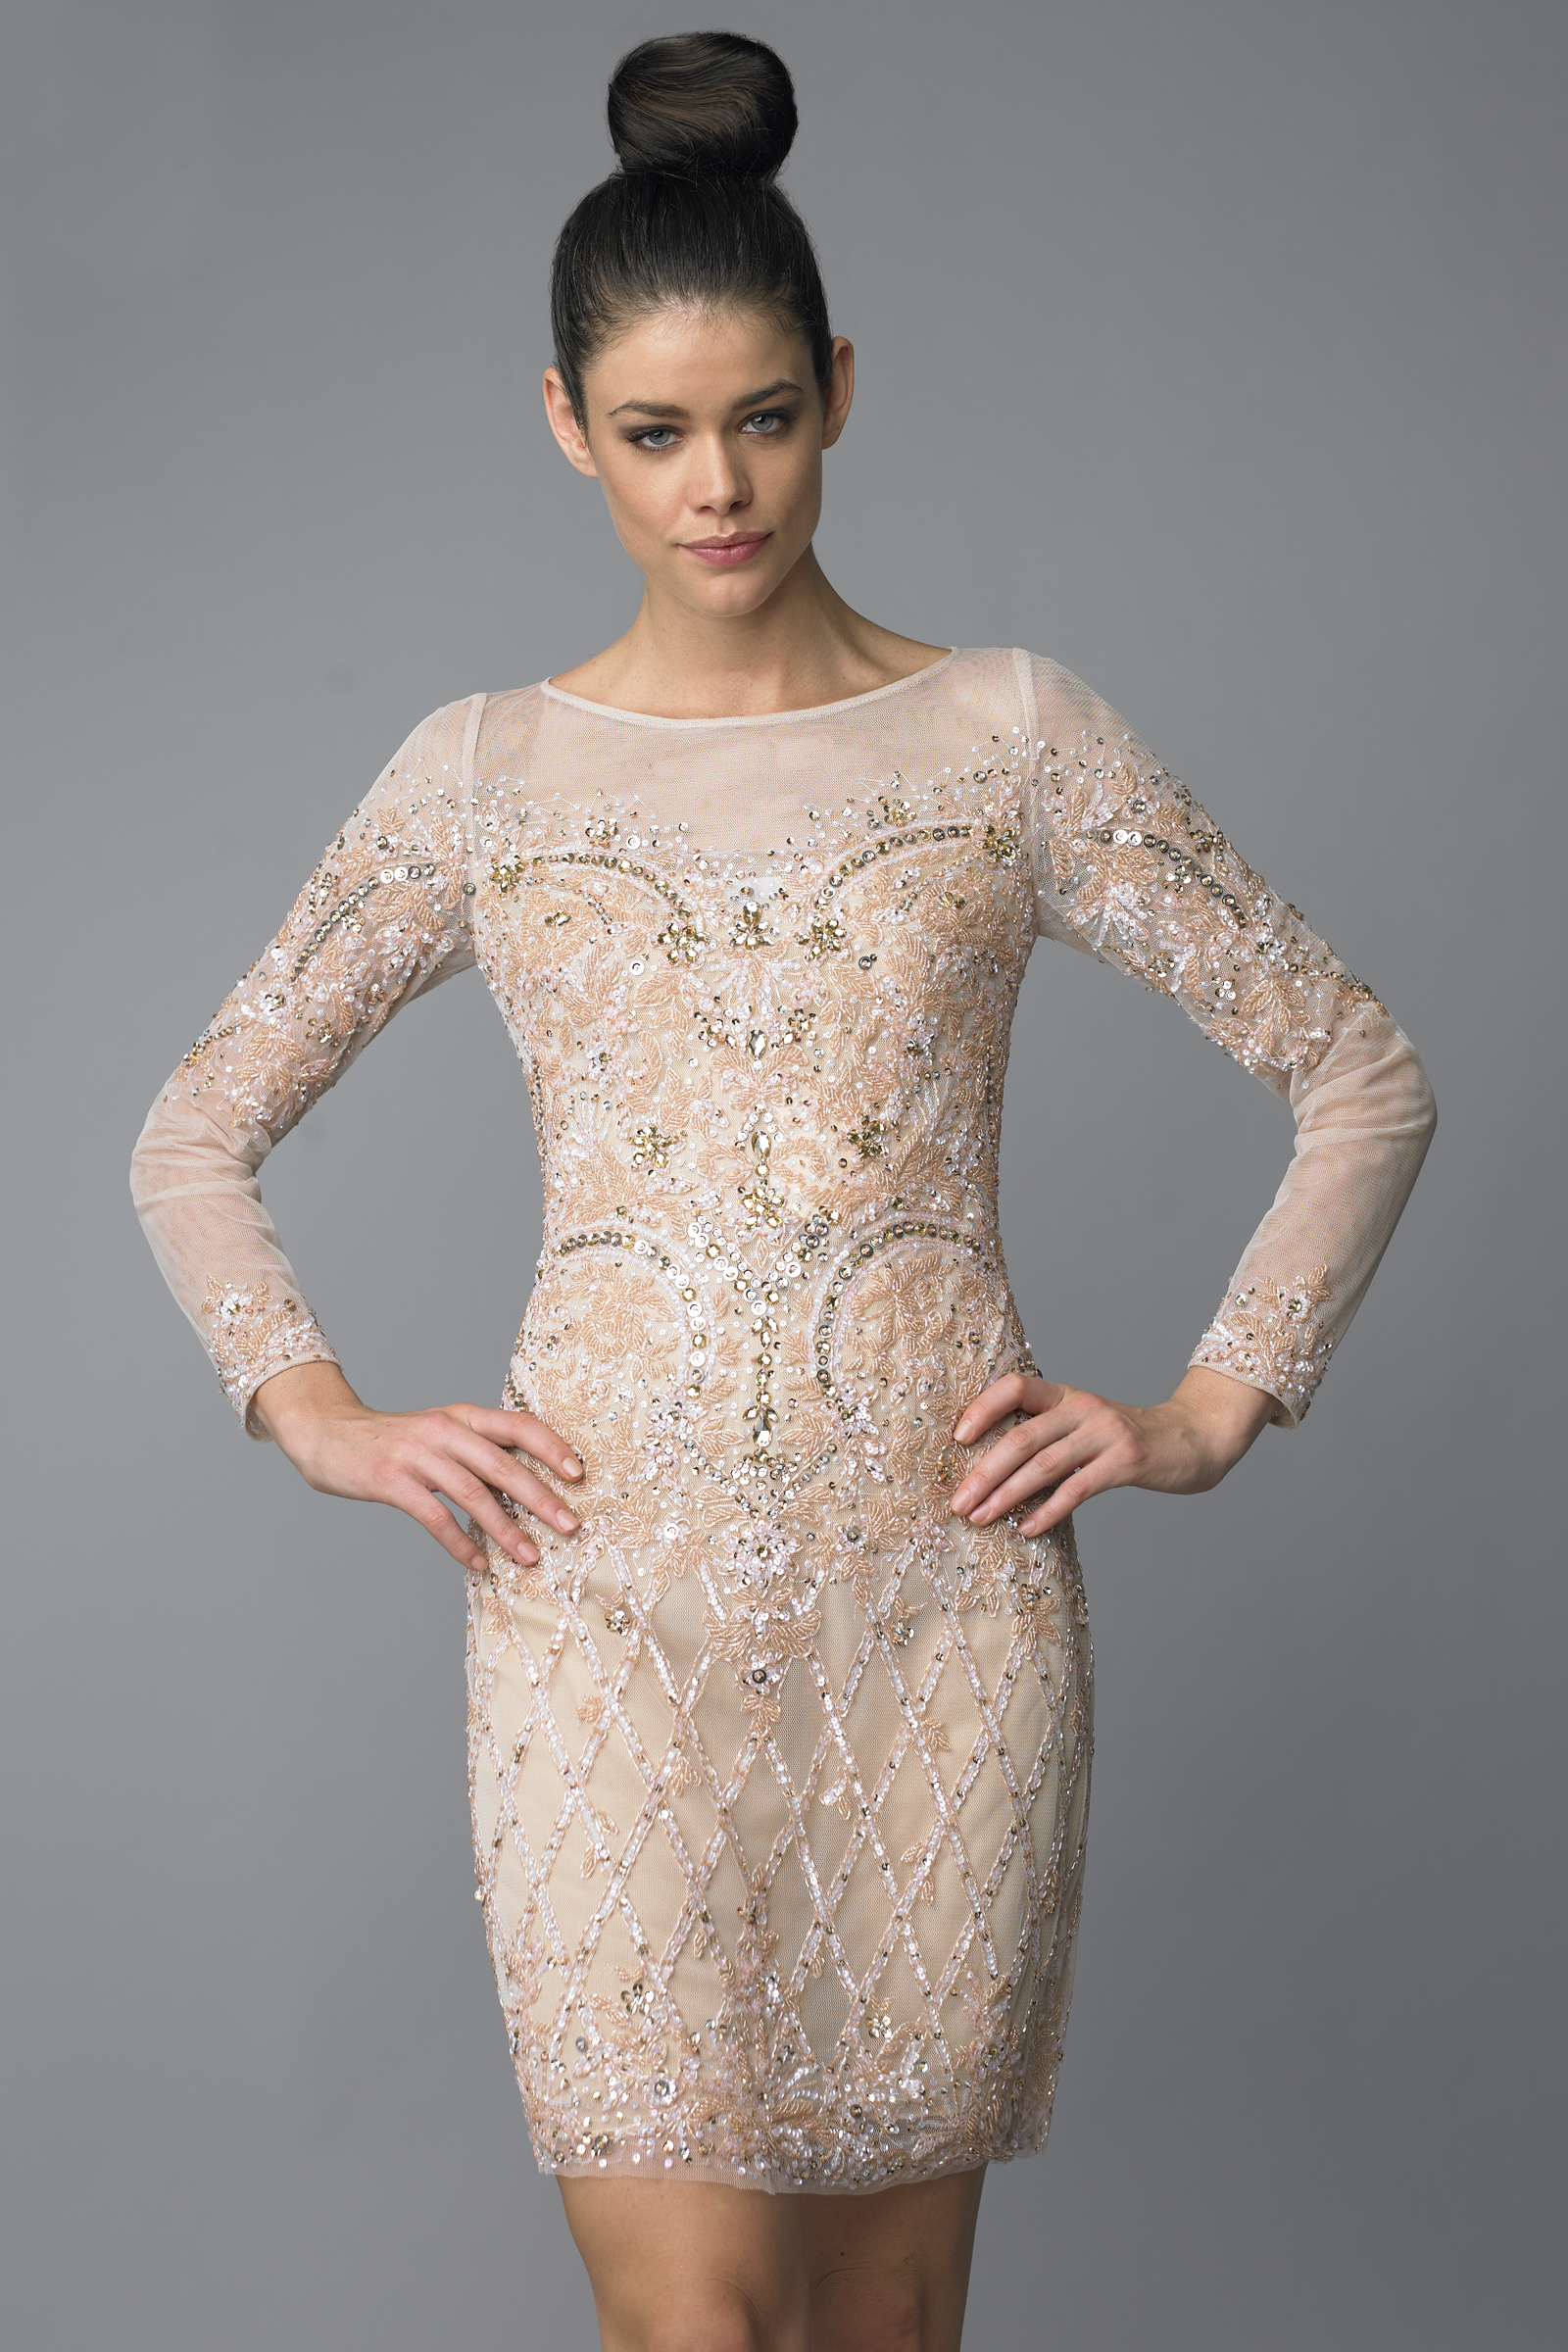 Long Sleeve Cocktail Dresses Picture Collection